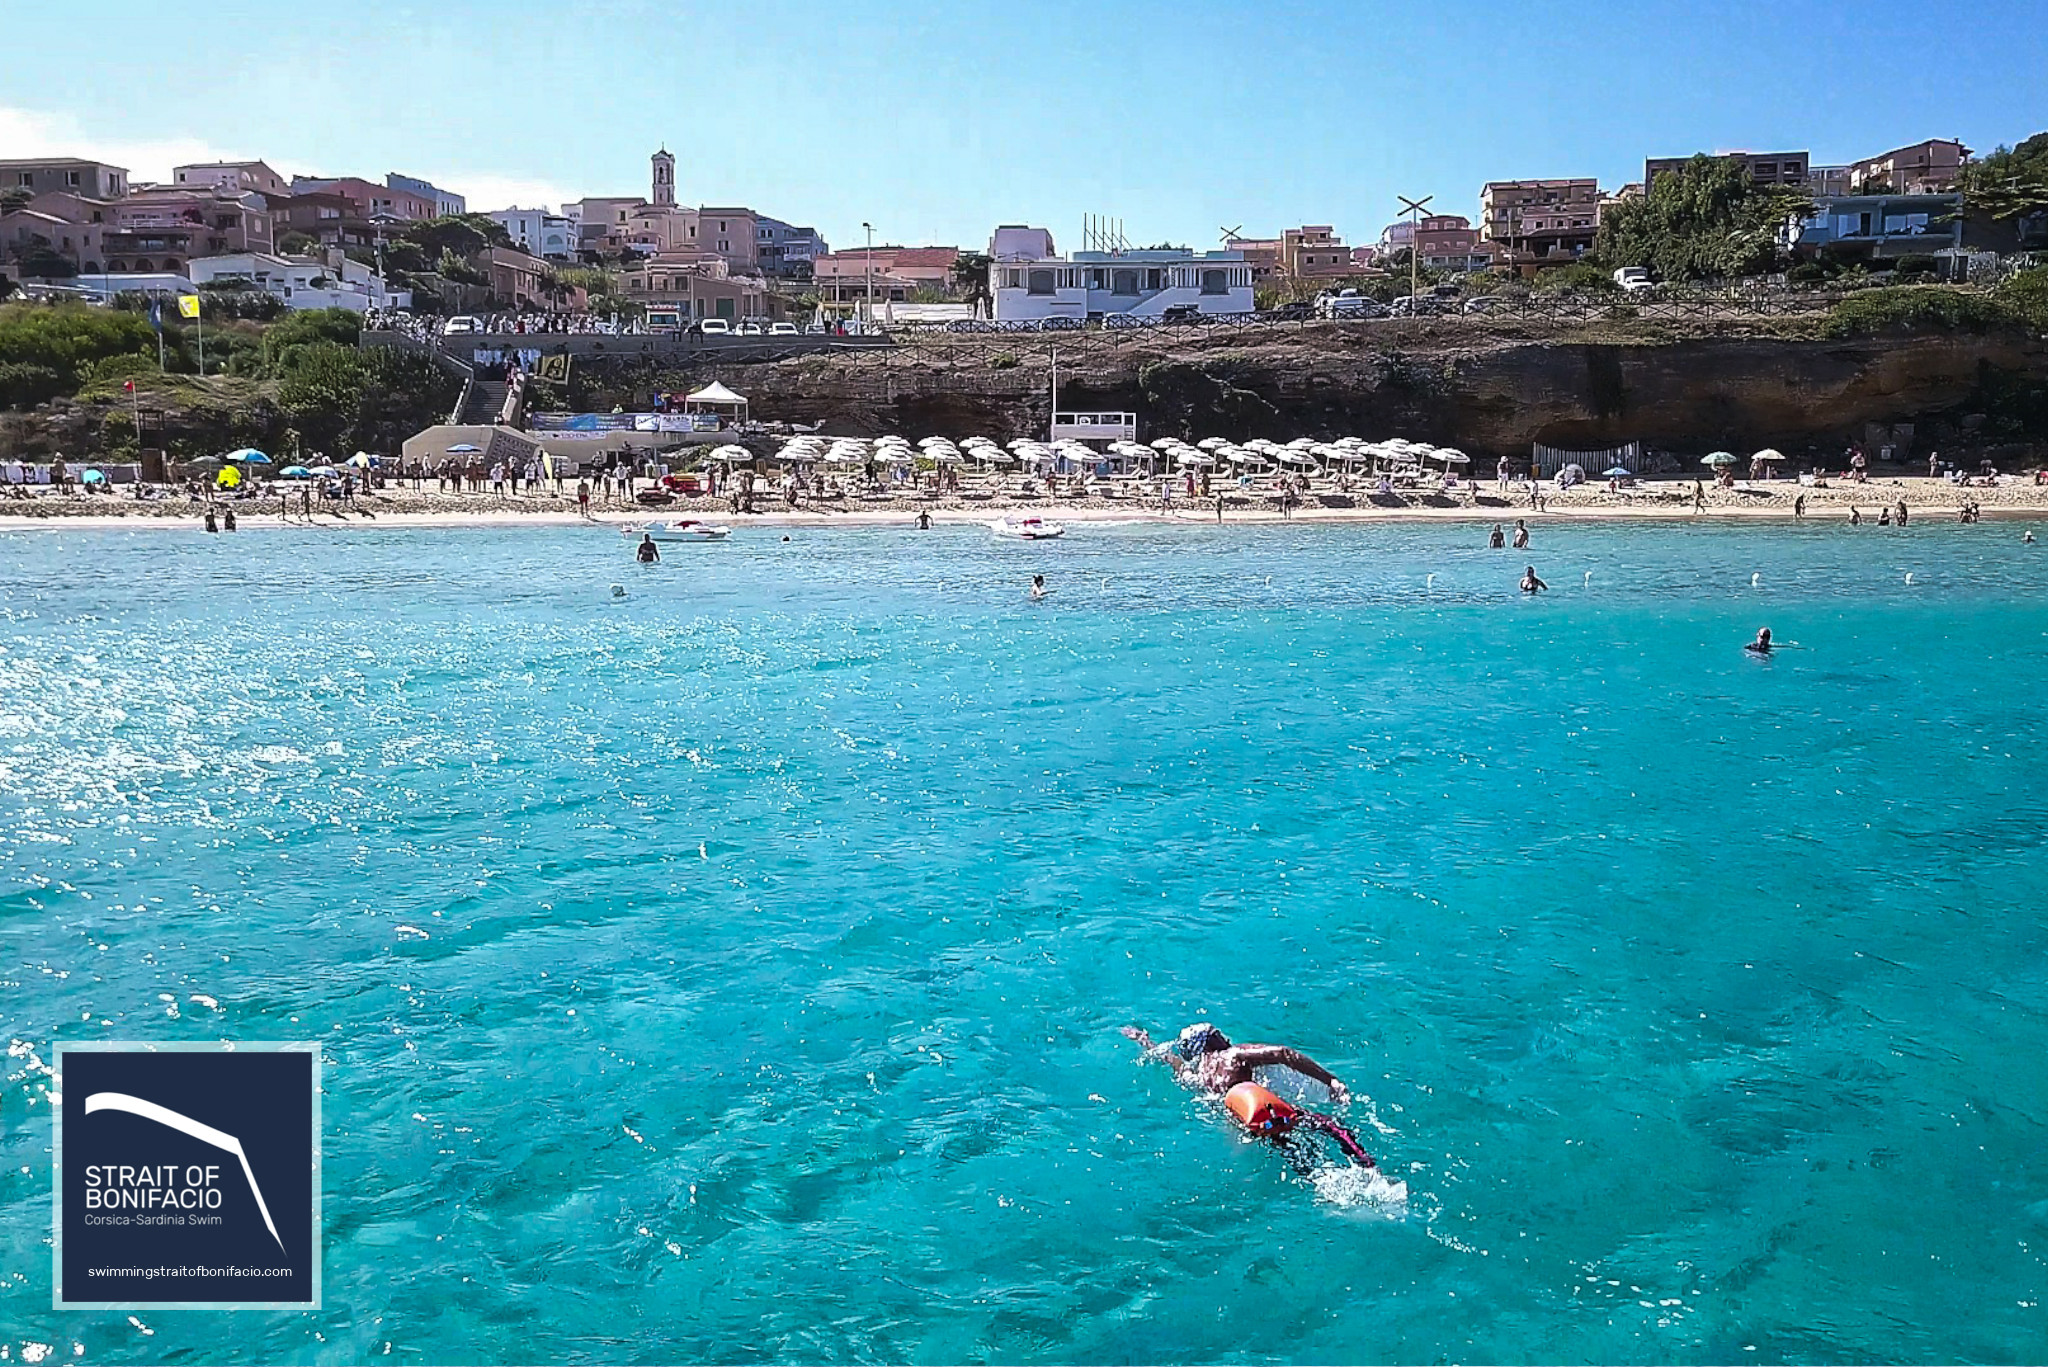 Private swim crossing in the Strait of Bonifacio